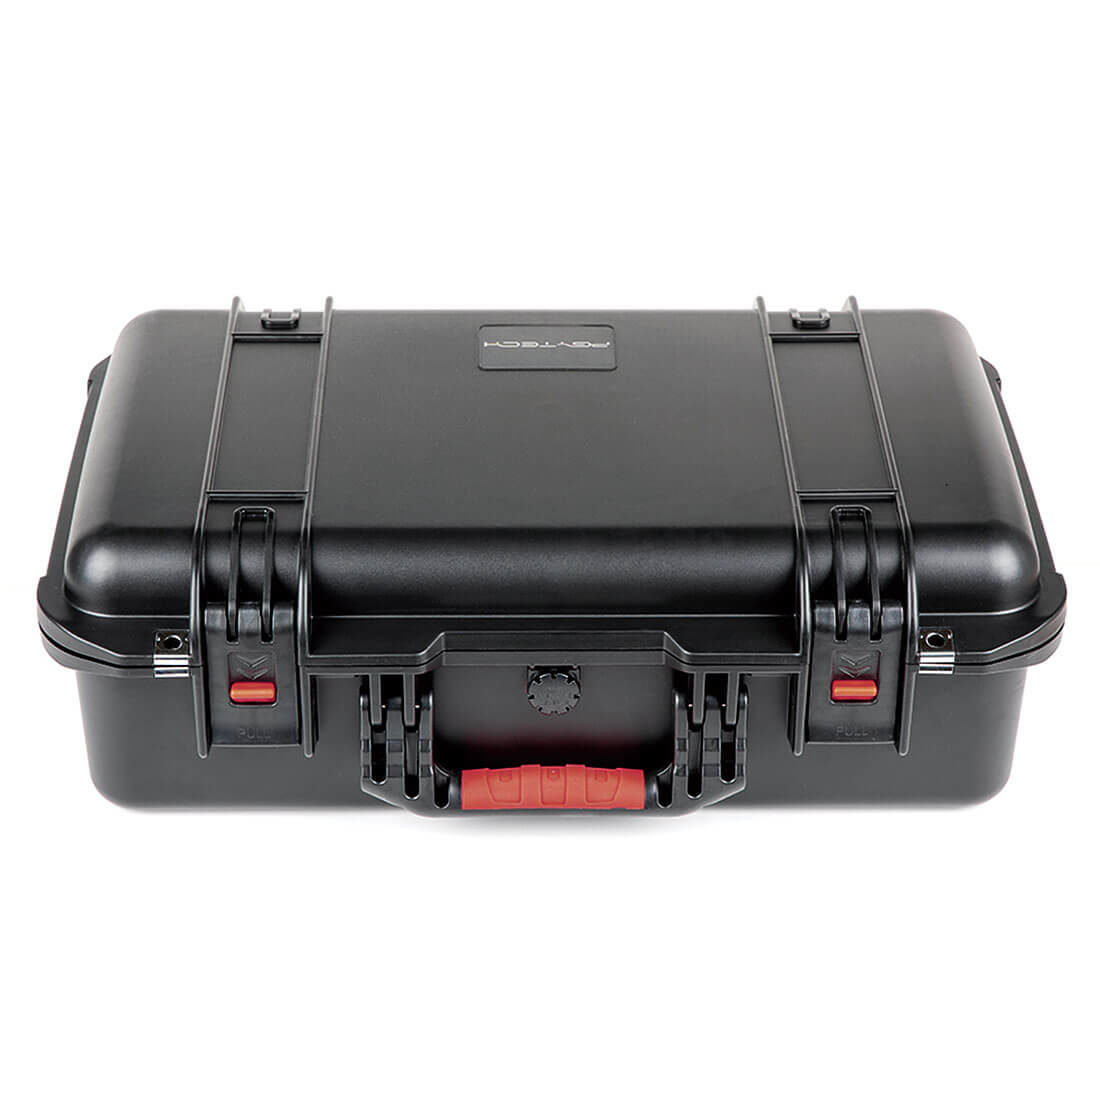 Pgytech Safety Carrying Case voor Accu's DJI Inspire 2